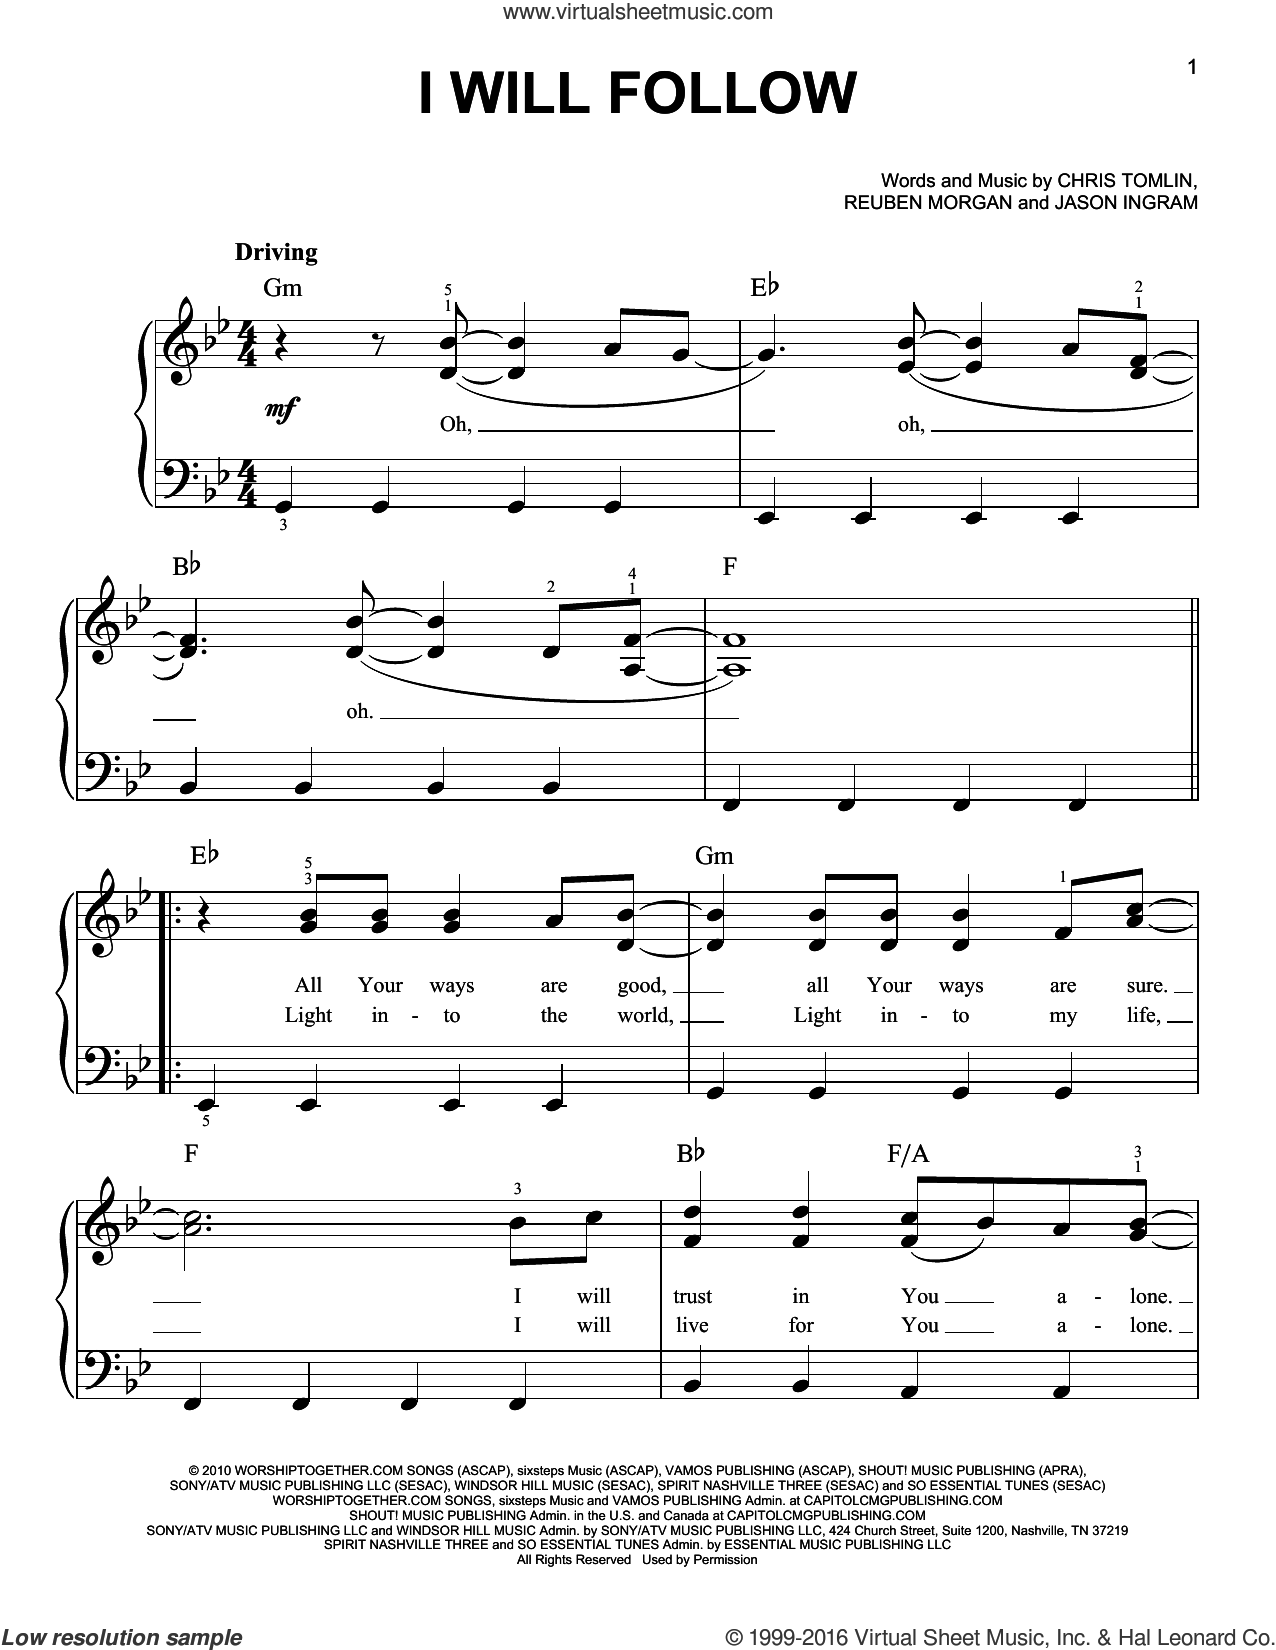 I Will Follow sheet music for piano solo by Reuben Morgan, Chris Tomlin and Jason Ingram